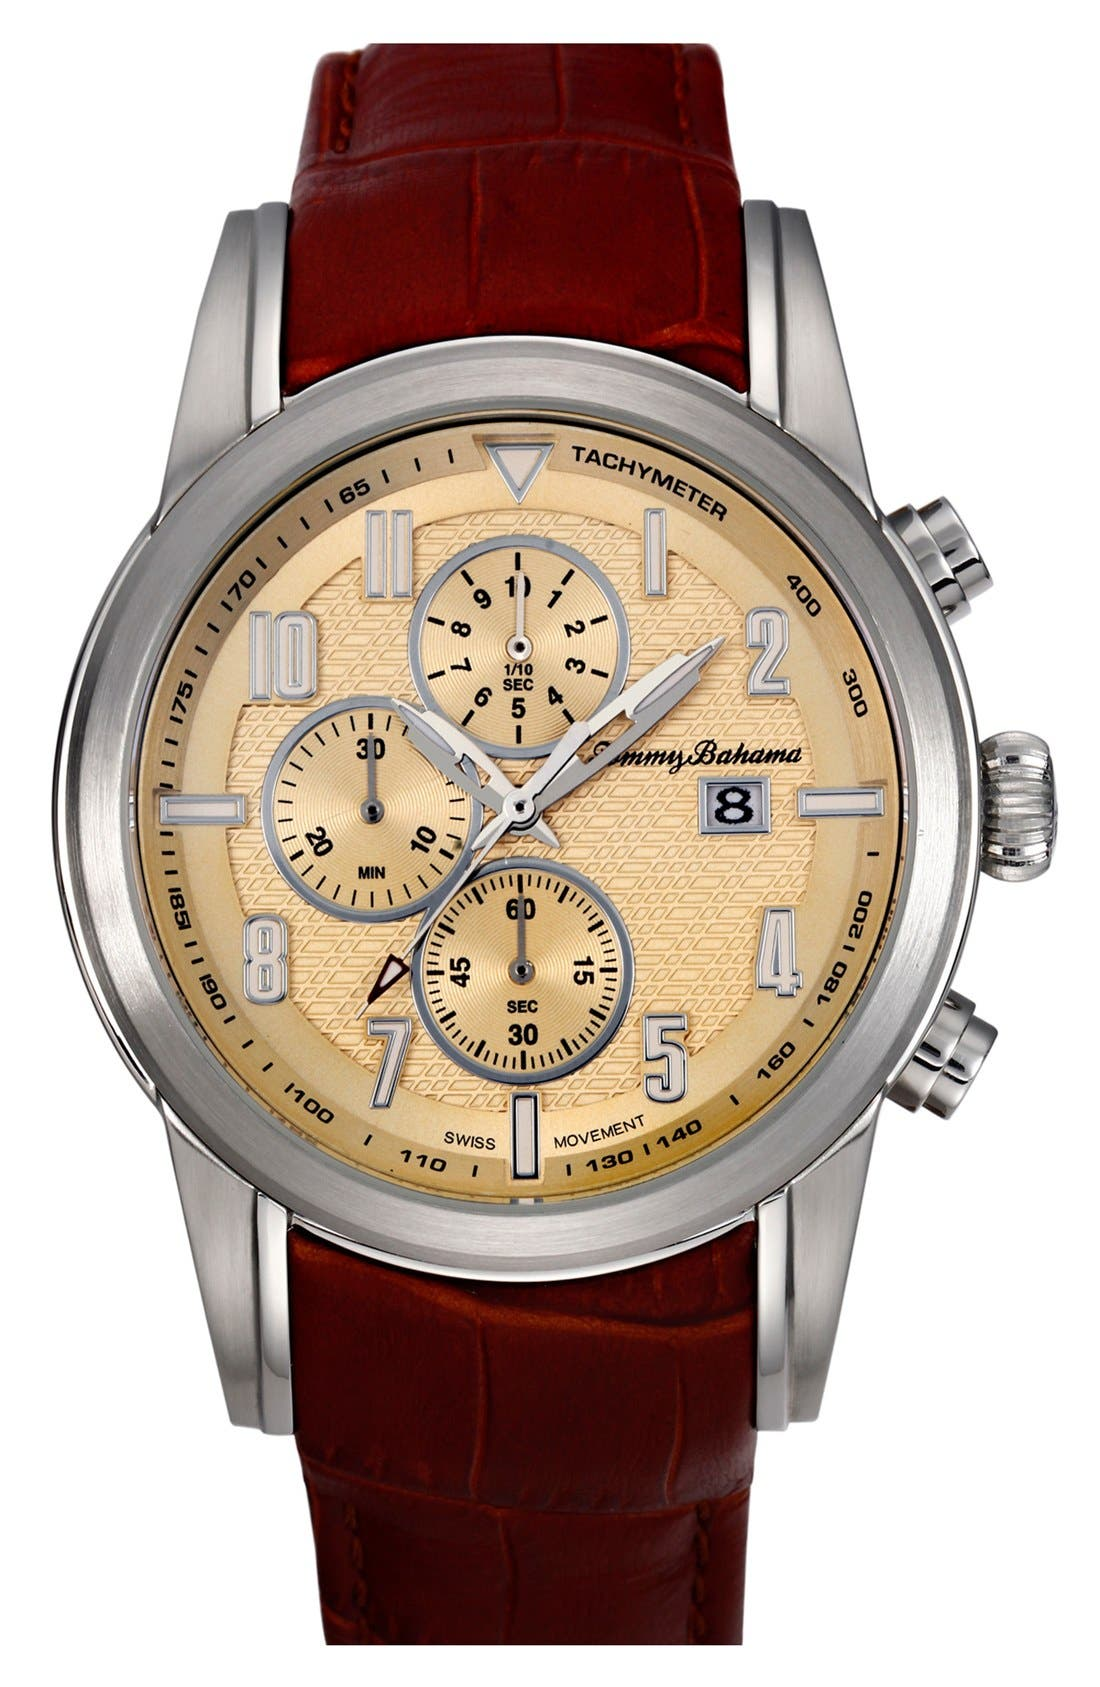 Main Image - Tommy Bahama 'Havana Pilot' Chronograph Leather Strap Watch, 44mm